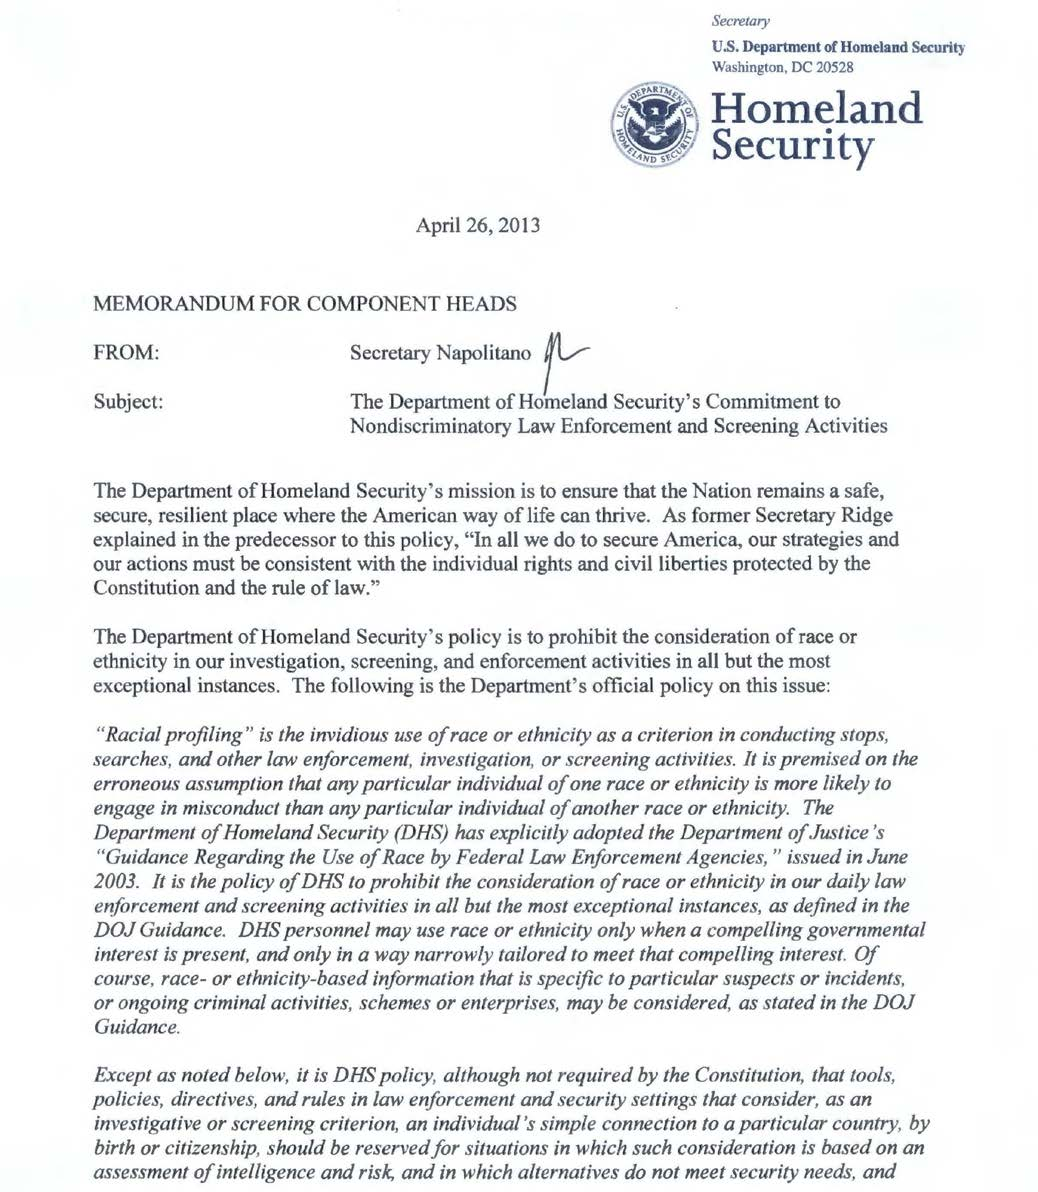 Appendix III: DHS Commitment to Nondiscriminatory Law Enforcement and Screening